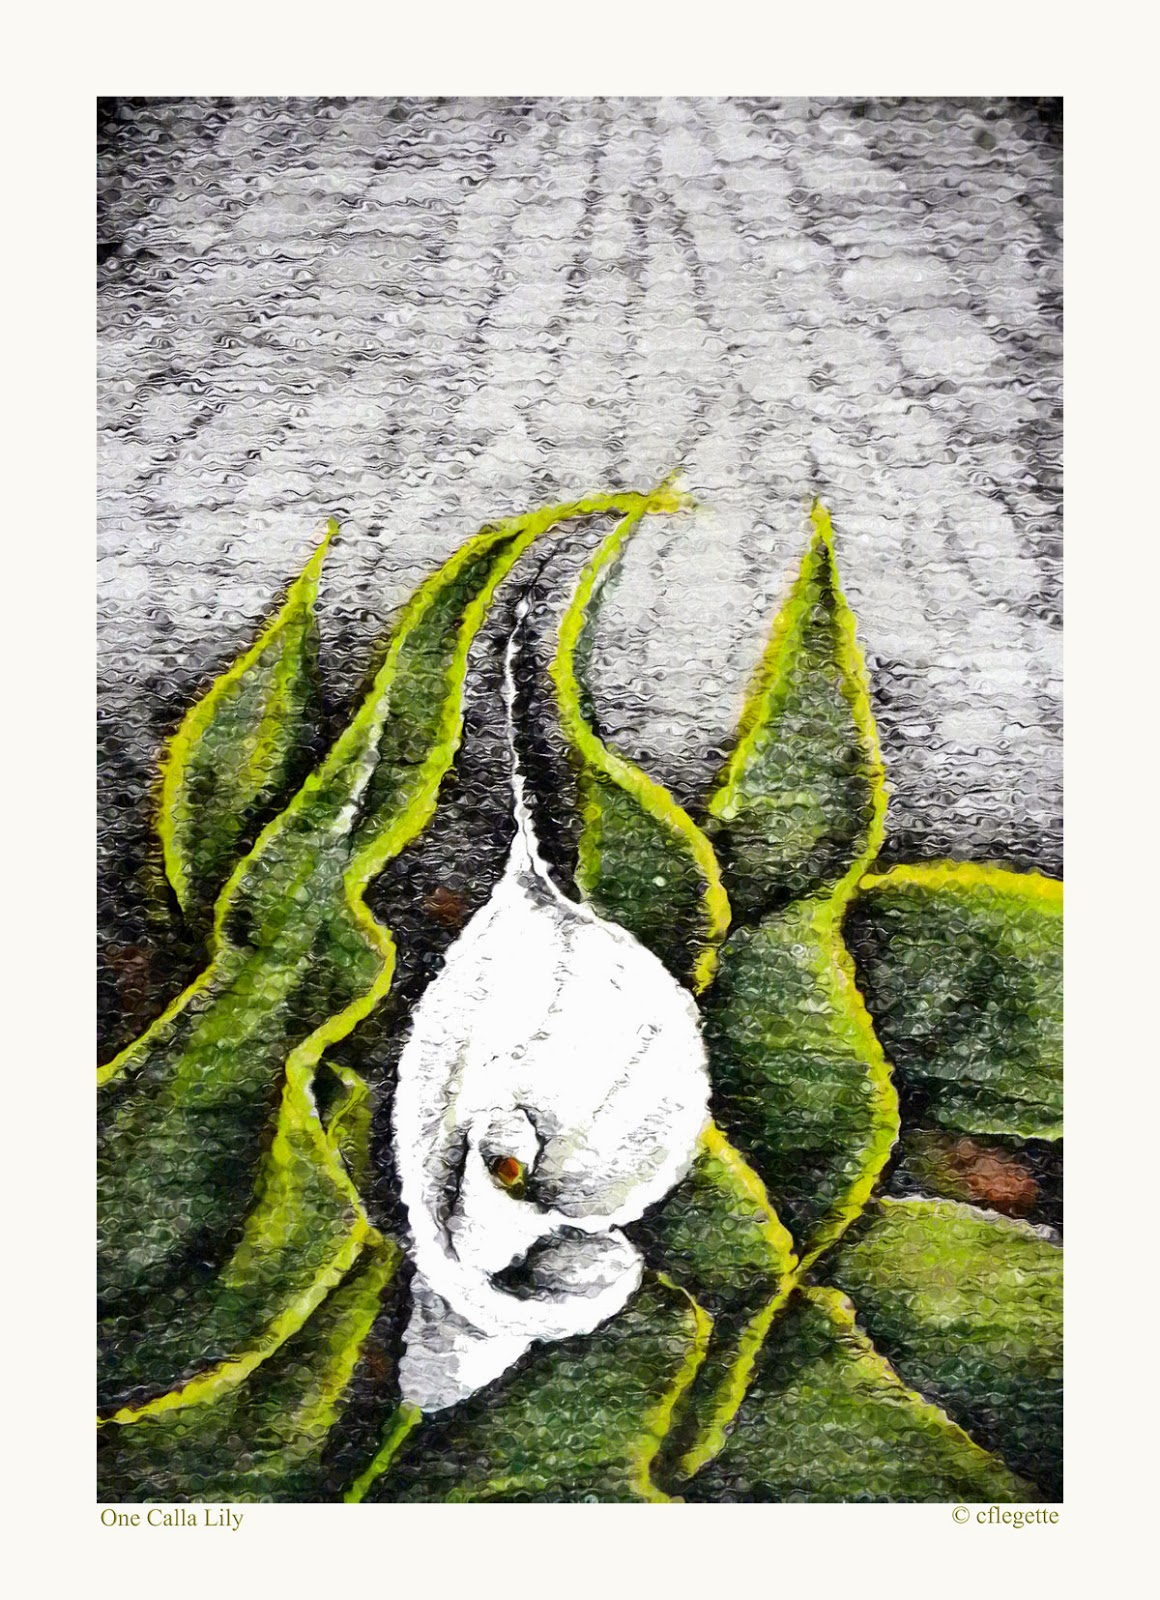 http://fineartamerica.com/featured/one-calla-lily-c-f-legette.html?newartwork=true